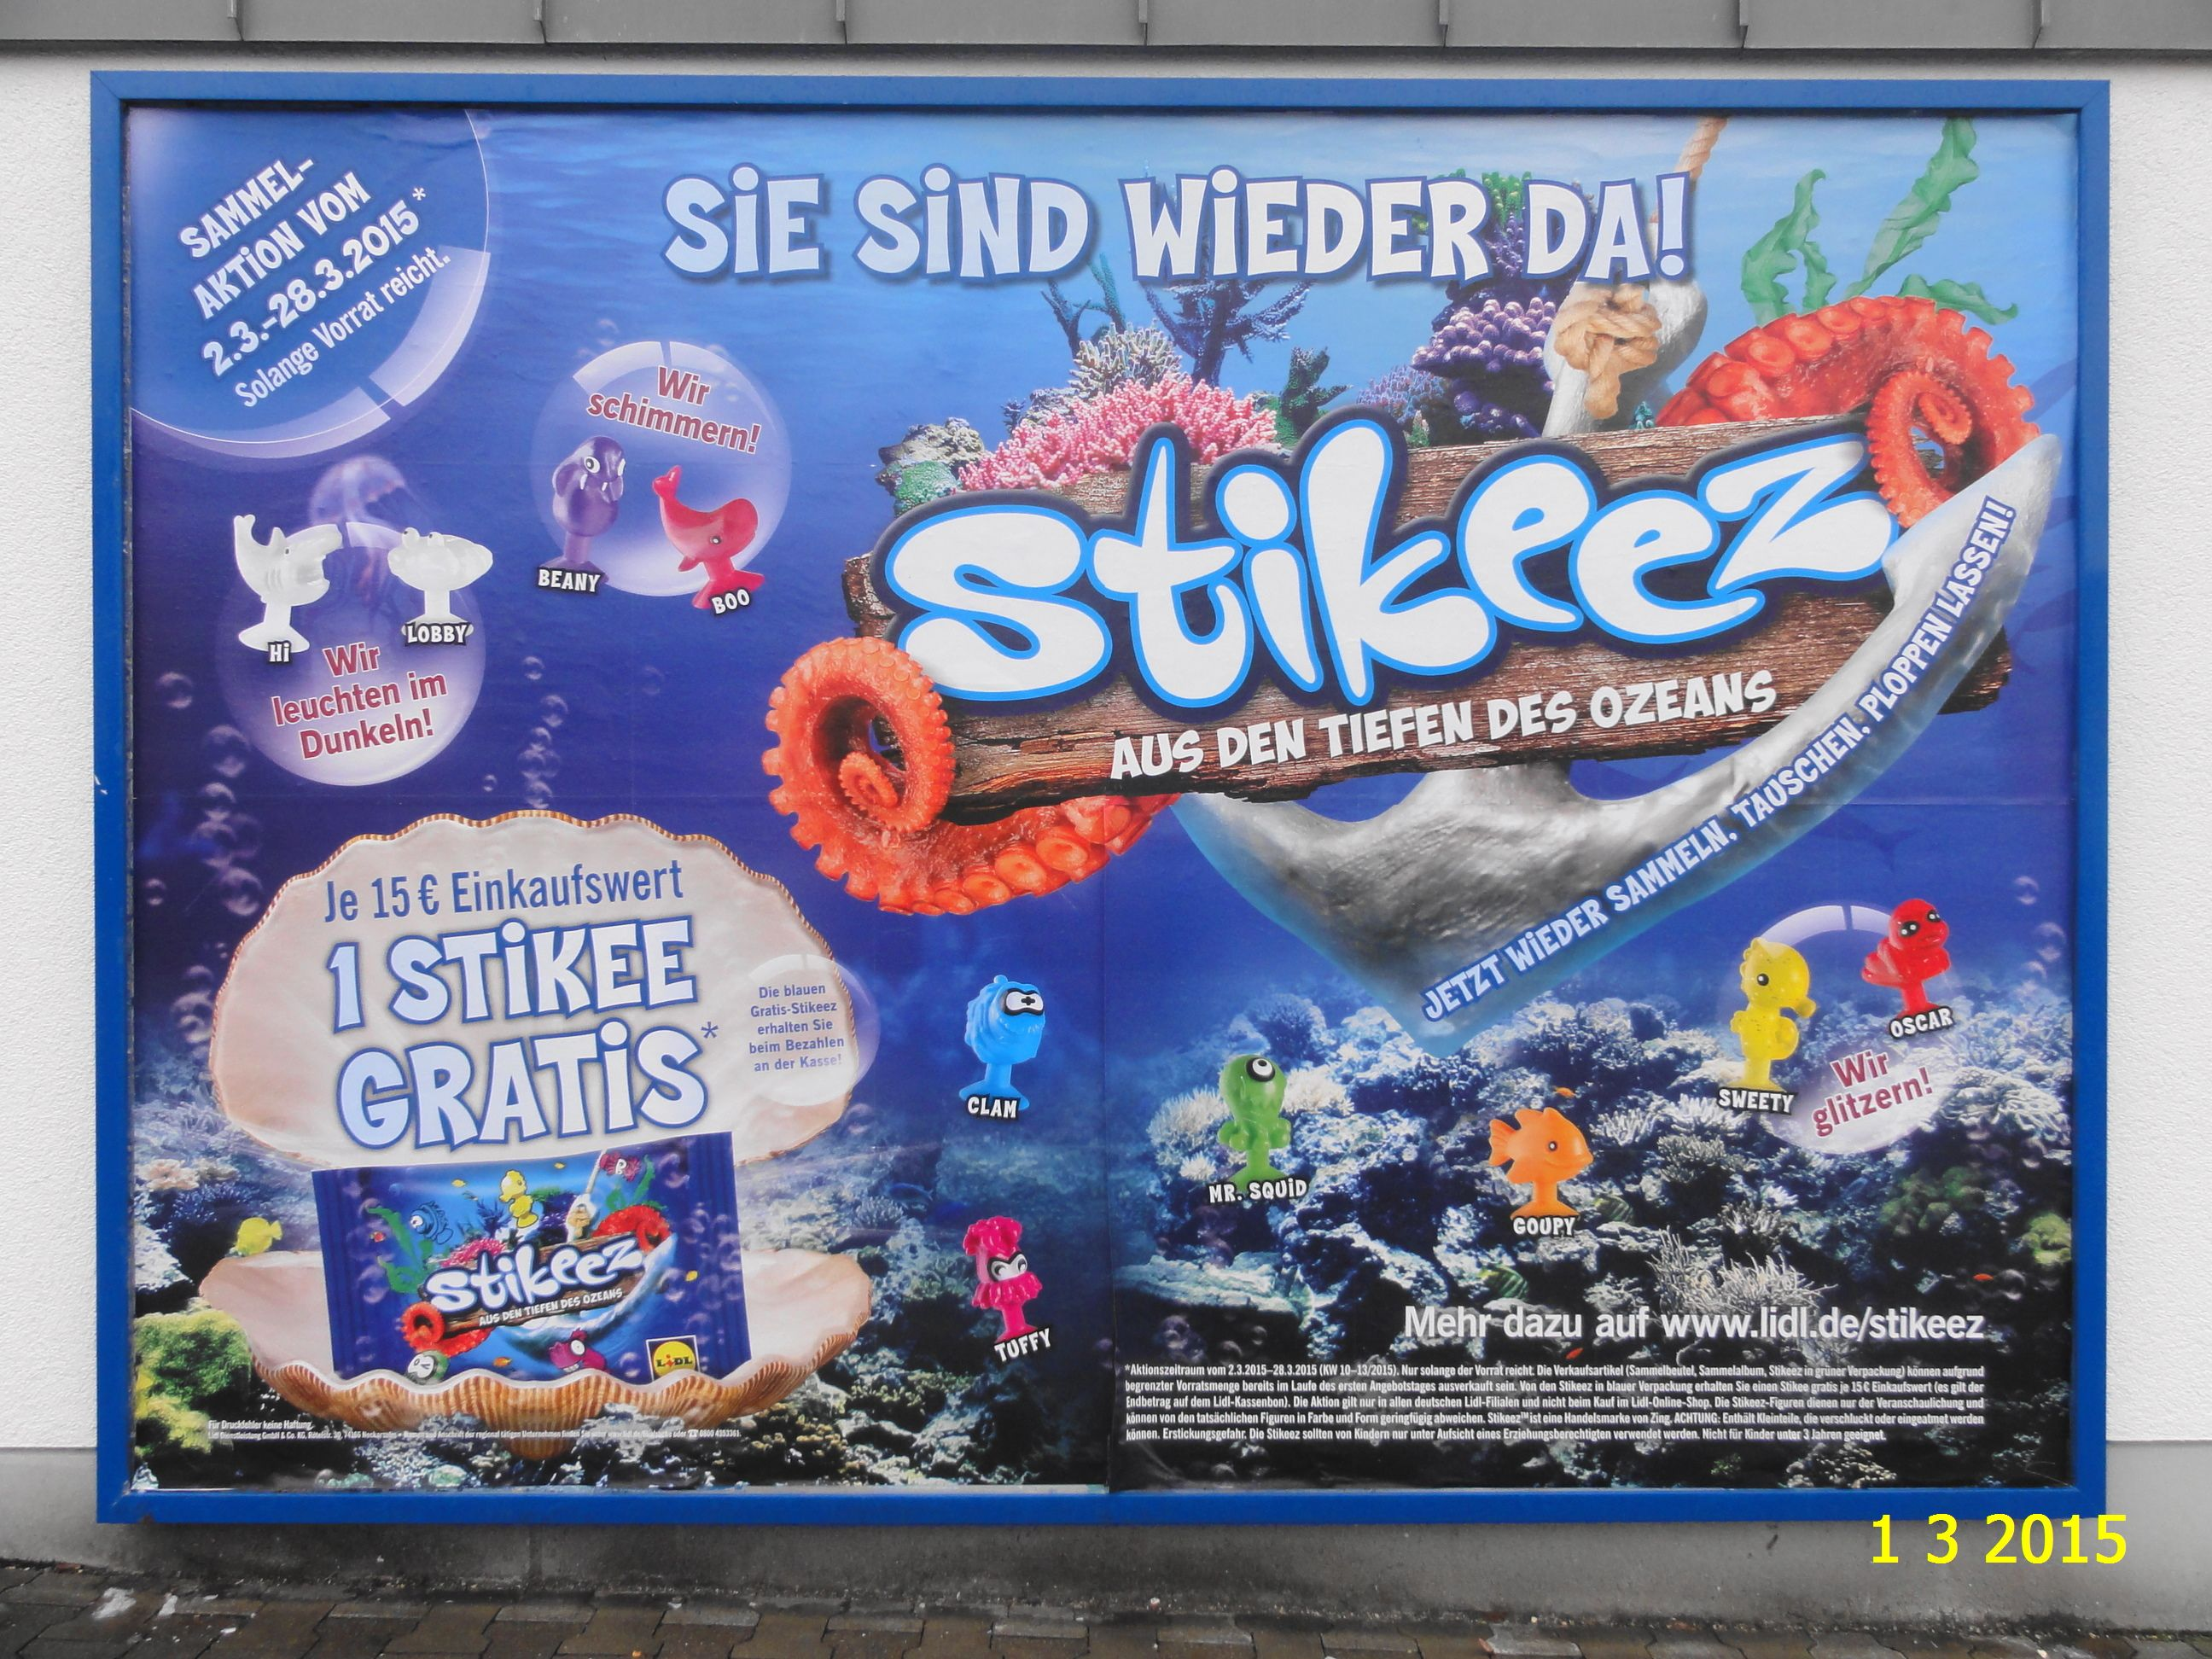 500. - Plakat in Stockach. / 01.03.2015./